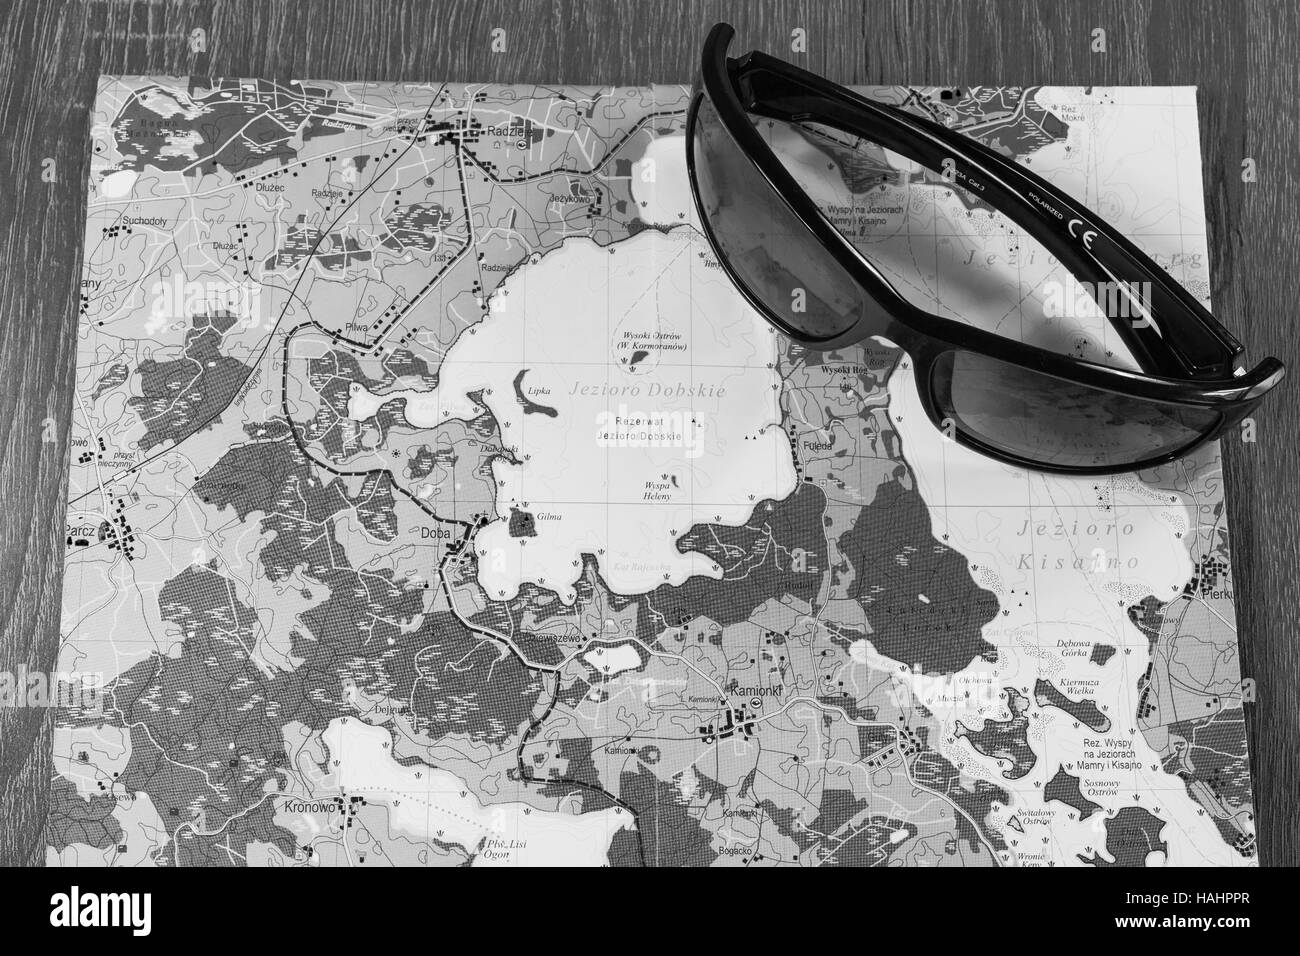 Eyewear placed on the map. Sunglasses with a map of specific Polish region. Glasses and map on a table - Stock Image